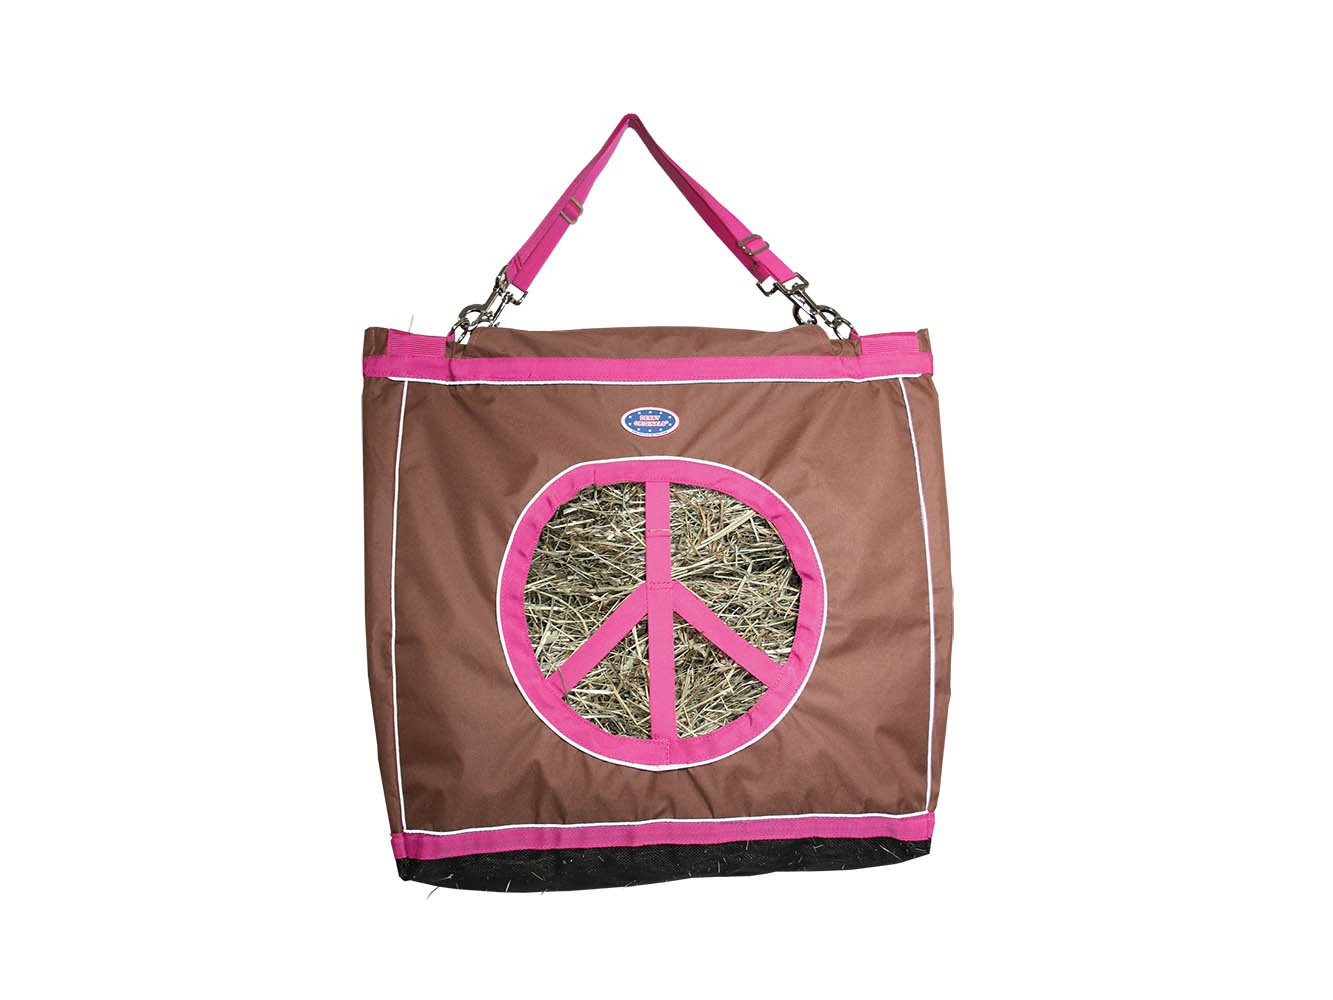 Derby Originals Reflective Peace Luv'in Top Load Hay Bag with Hanging Straps Black 71-7214-BK